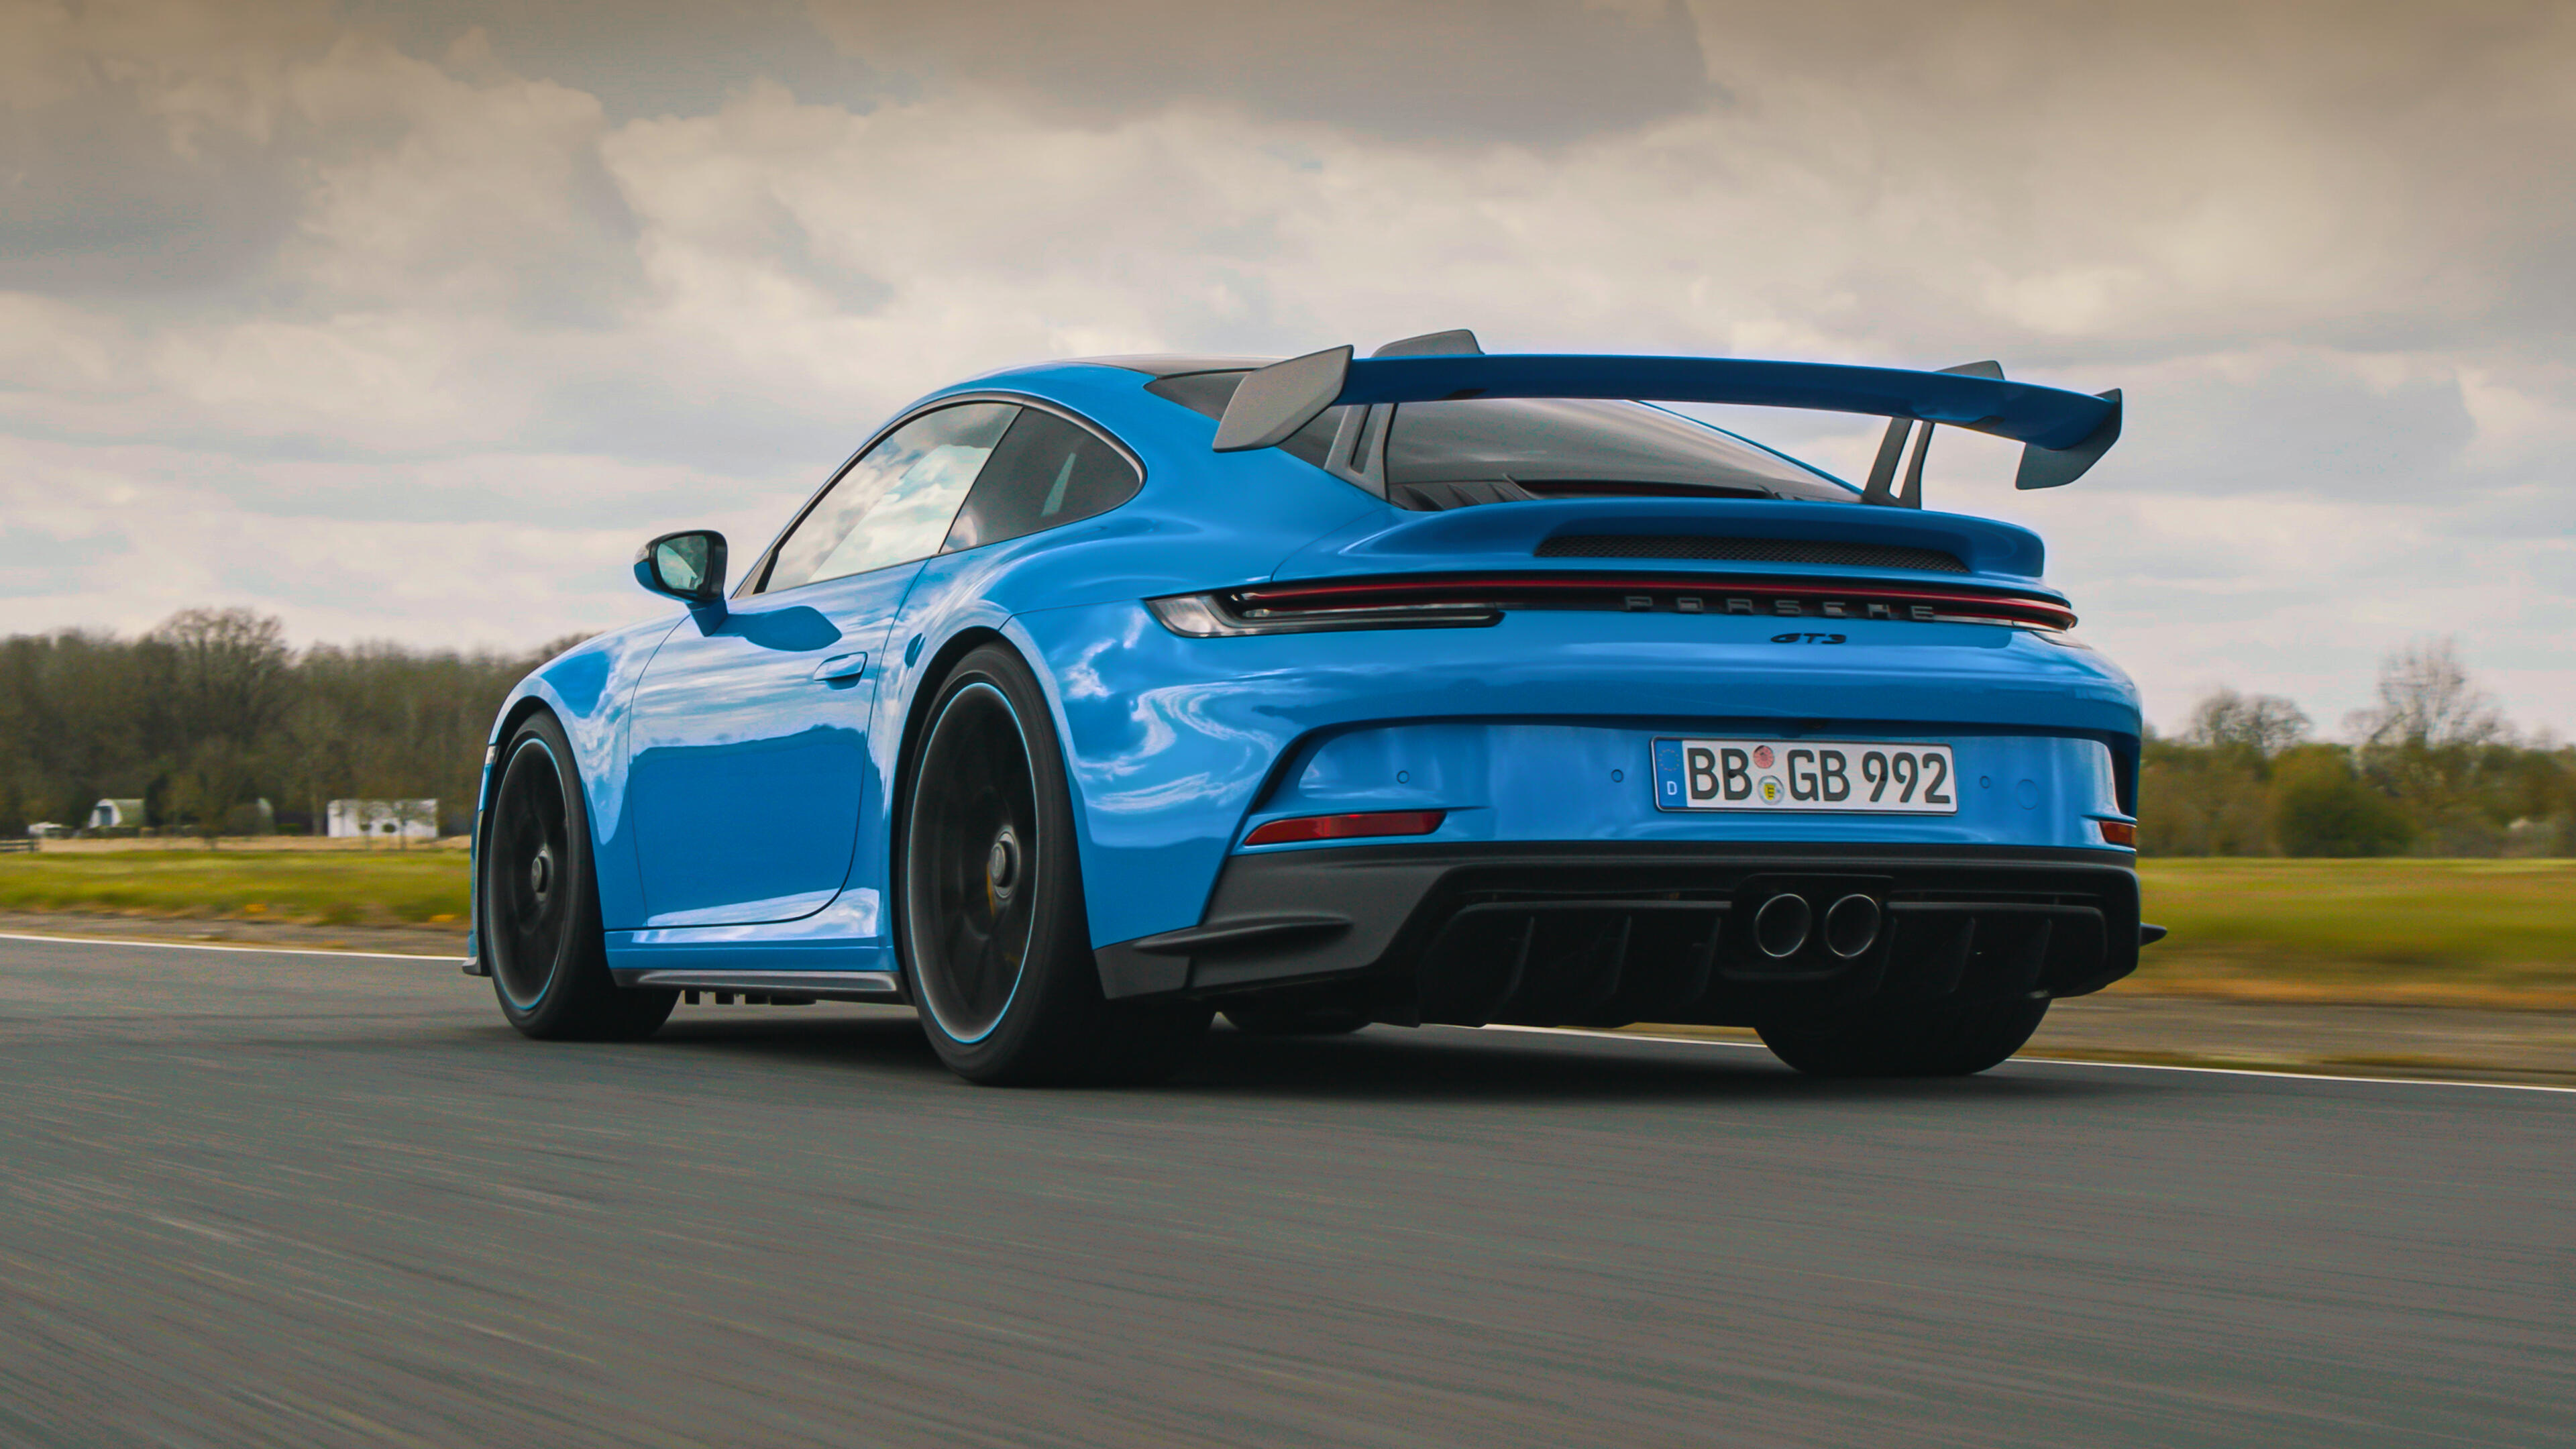 Video: We take the 2022 Porsche 911 GT3 out on track